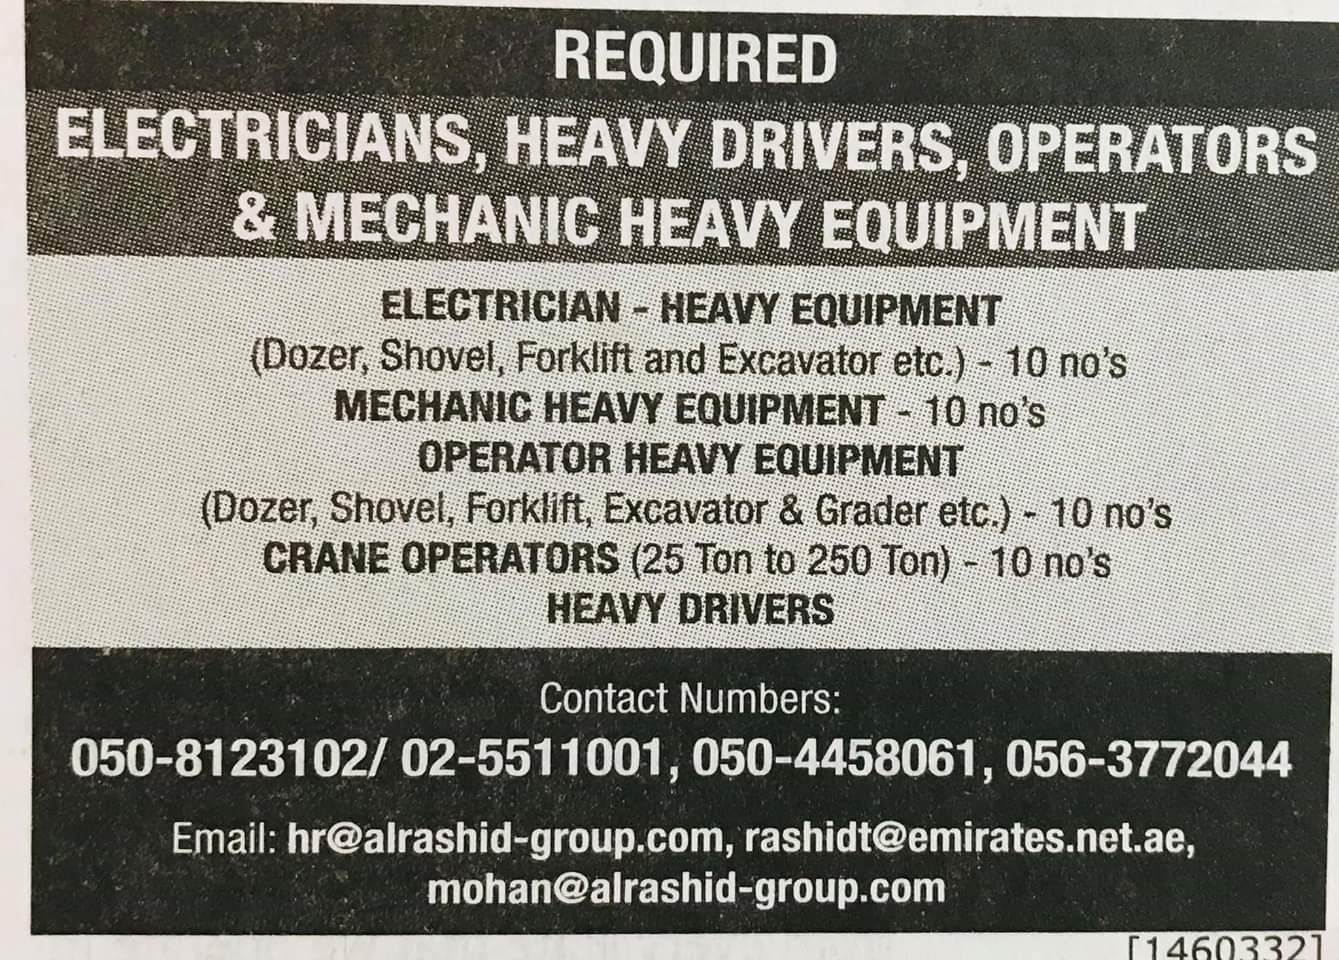 Required Electricains,Heavy Drivers,Operators & Mechanic for